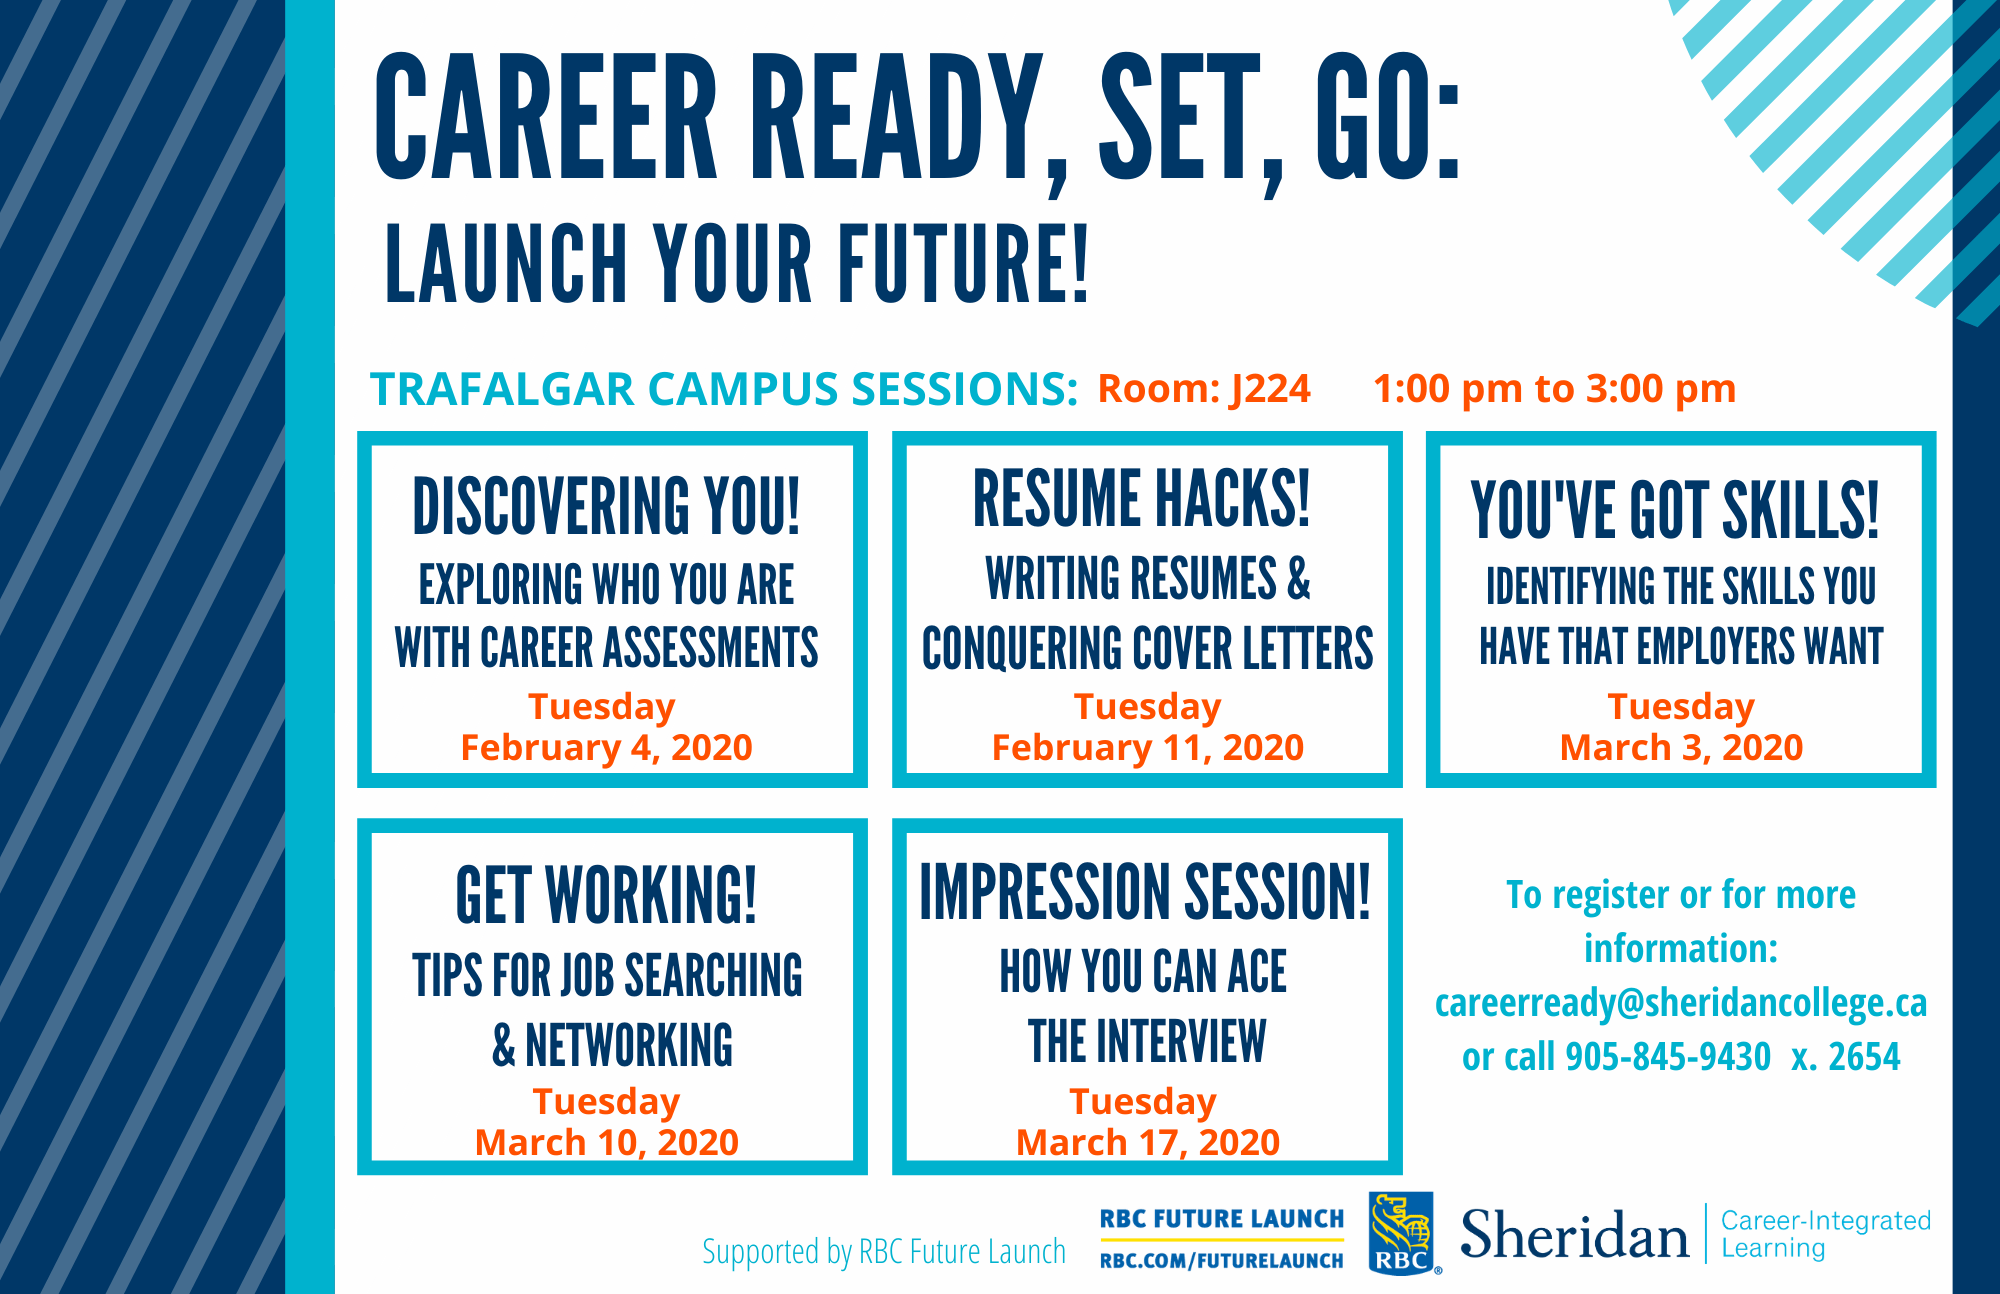 Career Ready infographic with information about career-related workshops at Trafalgar Campus